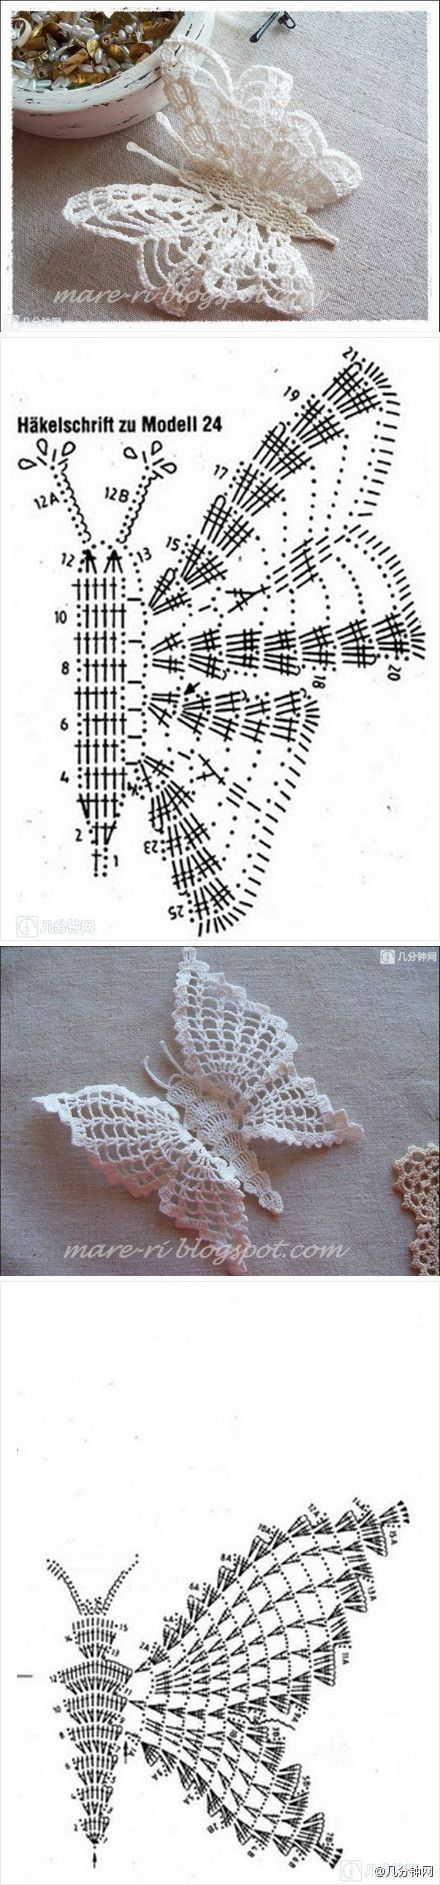 Aesthetic crochet butterfly chart